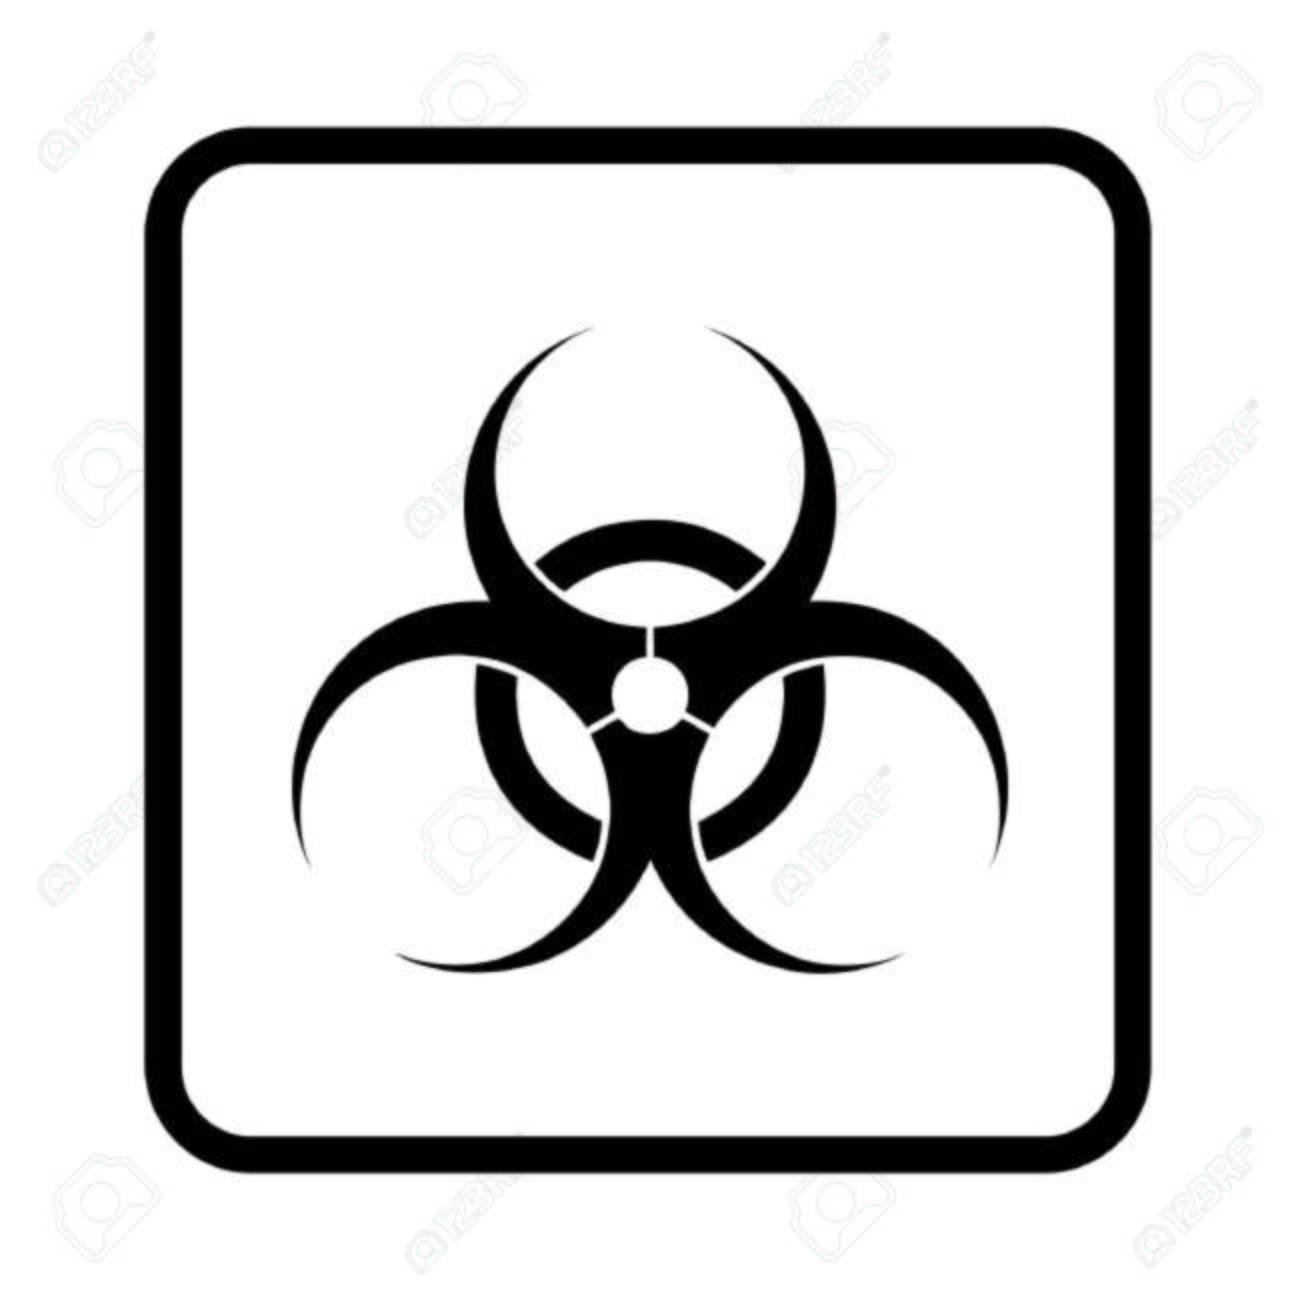 Biohazard Symbol Royalty Free Cliparts Vectors And Stock